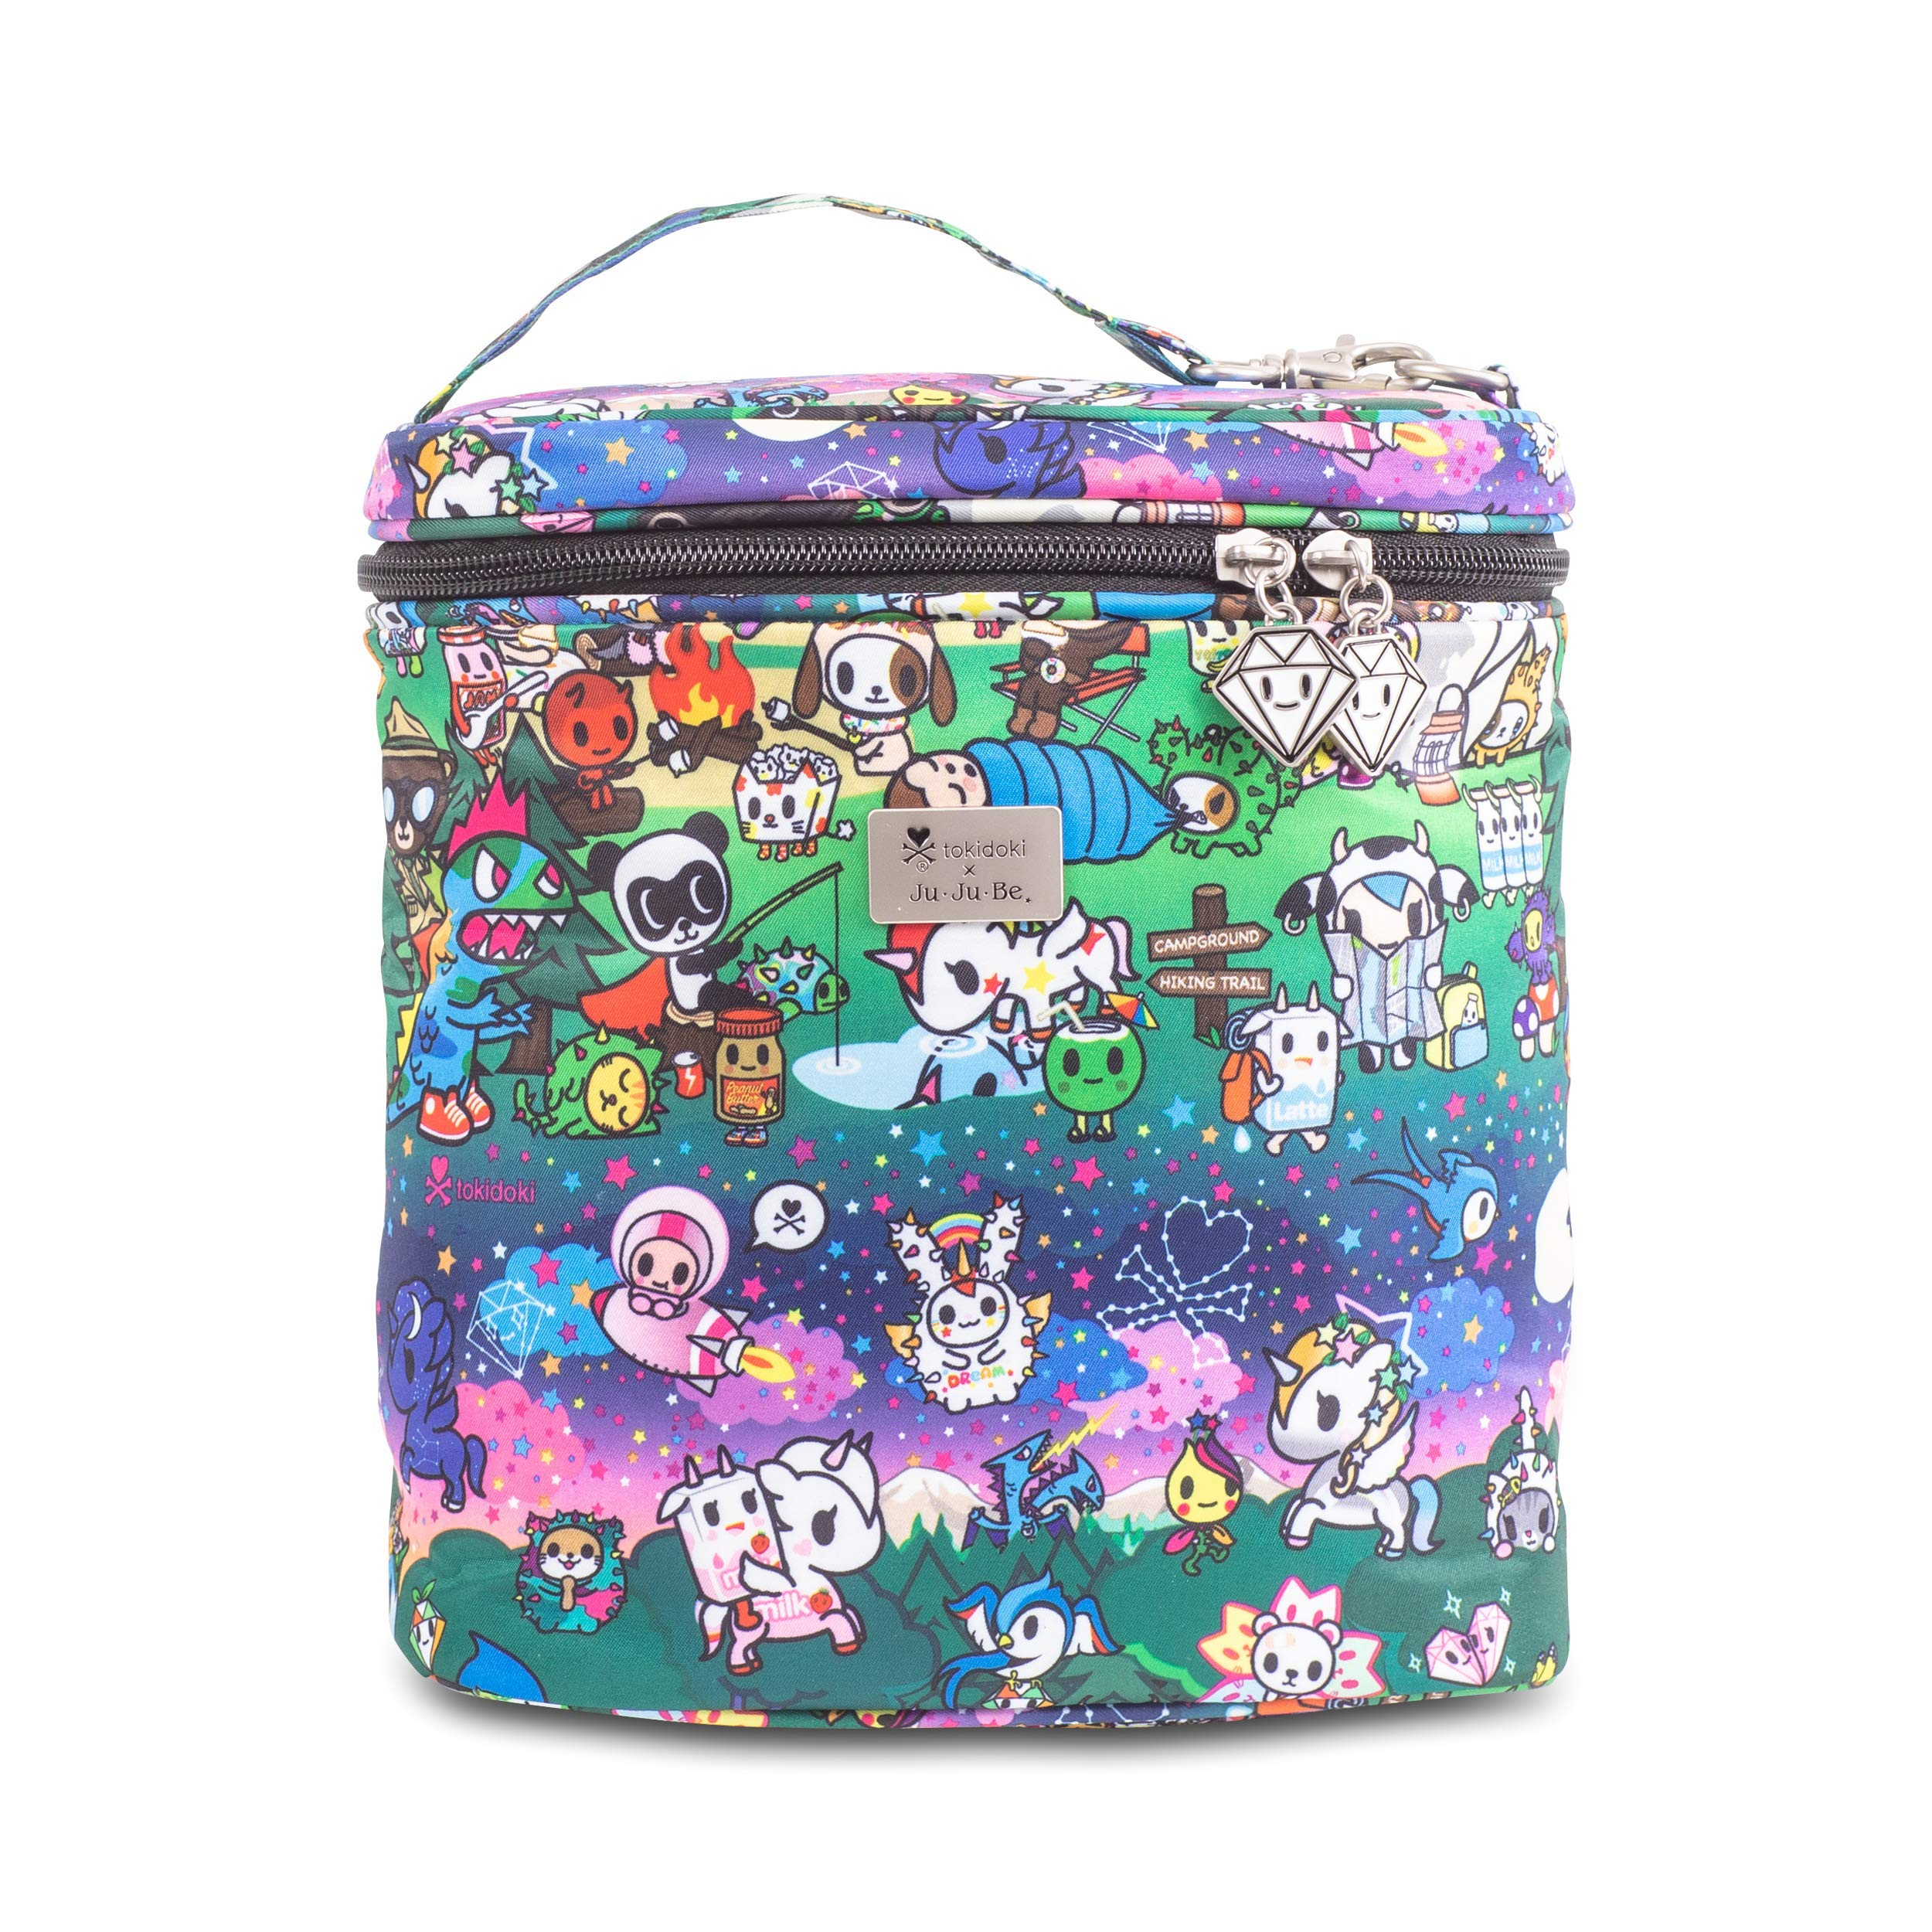 JuJuBe x Tokidoki Lunch Bag, Fuel Cell | Portable, Travel Friendly, Insulated, Reusable Stylish Lunch Tote | Camp Toki by Ju Ju Be